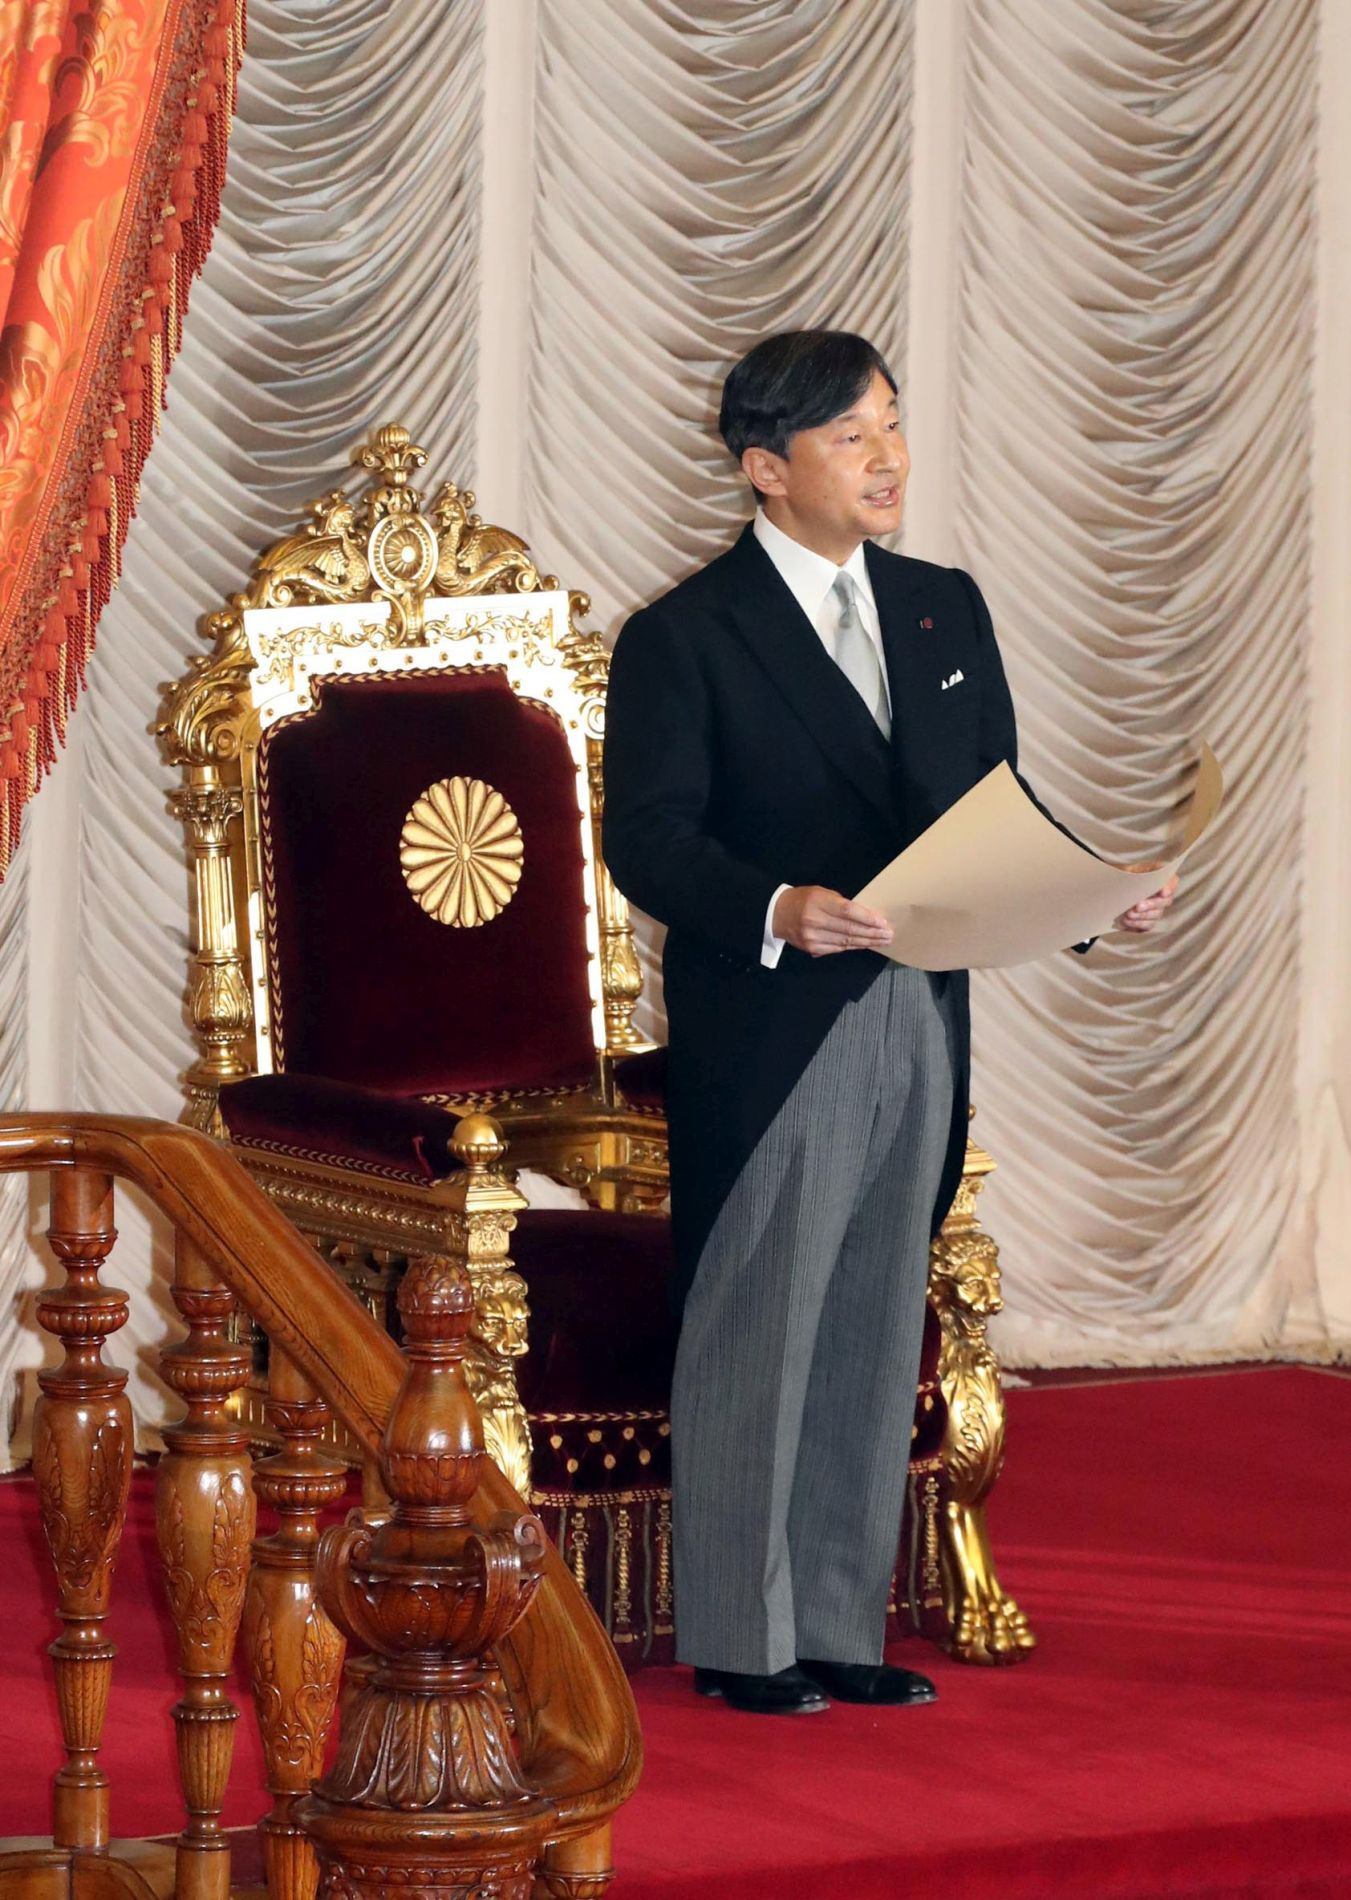 Japan the Emperors First Speech at National Diet 005